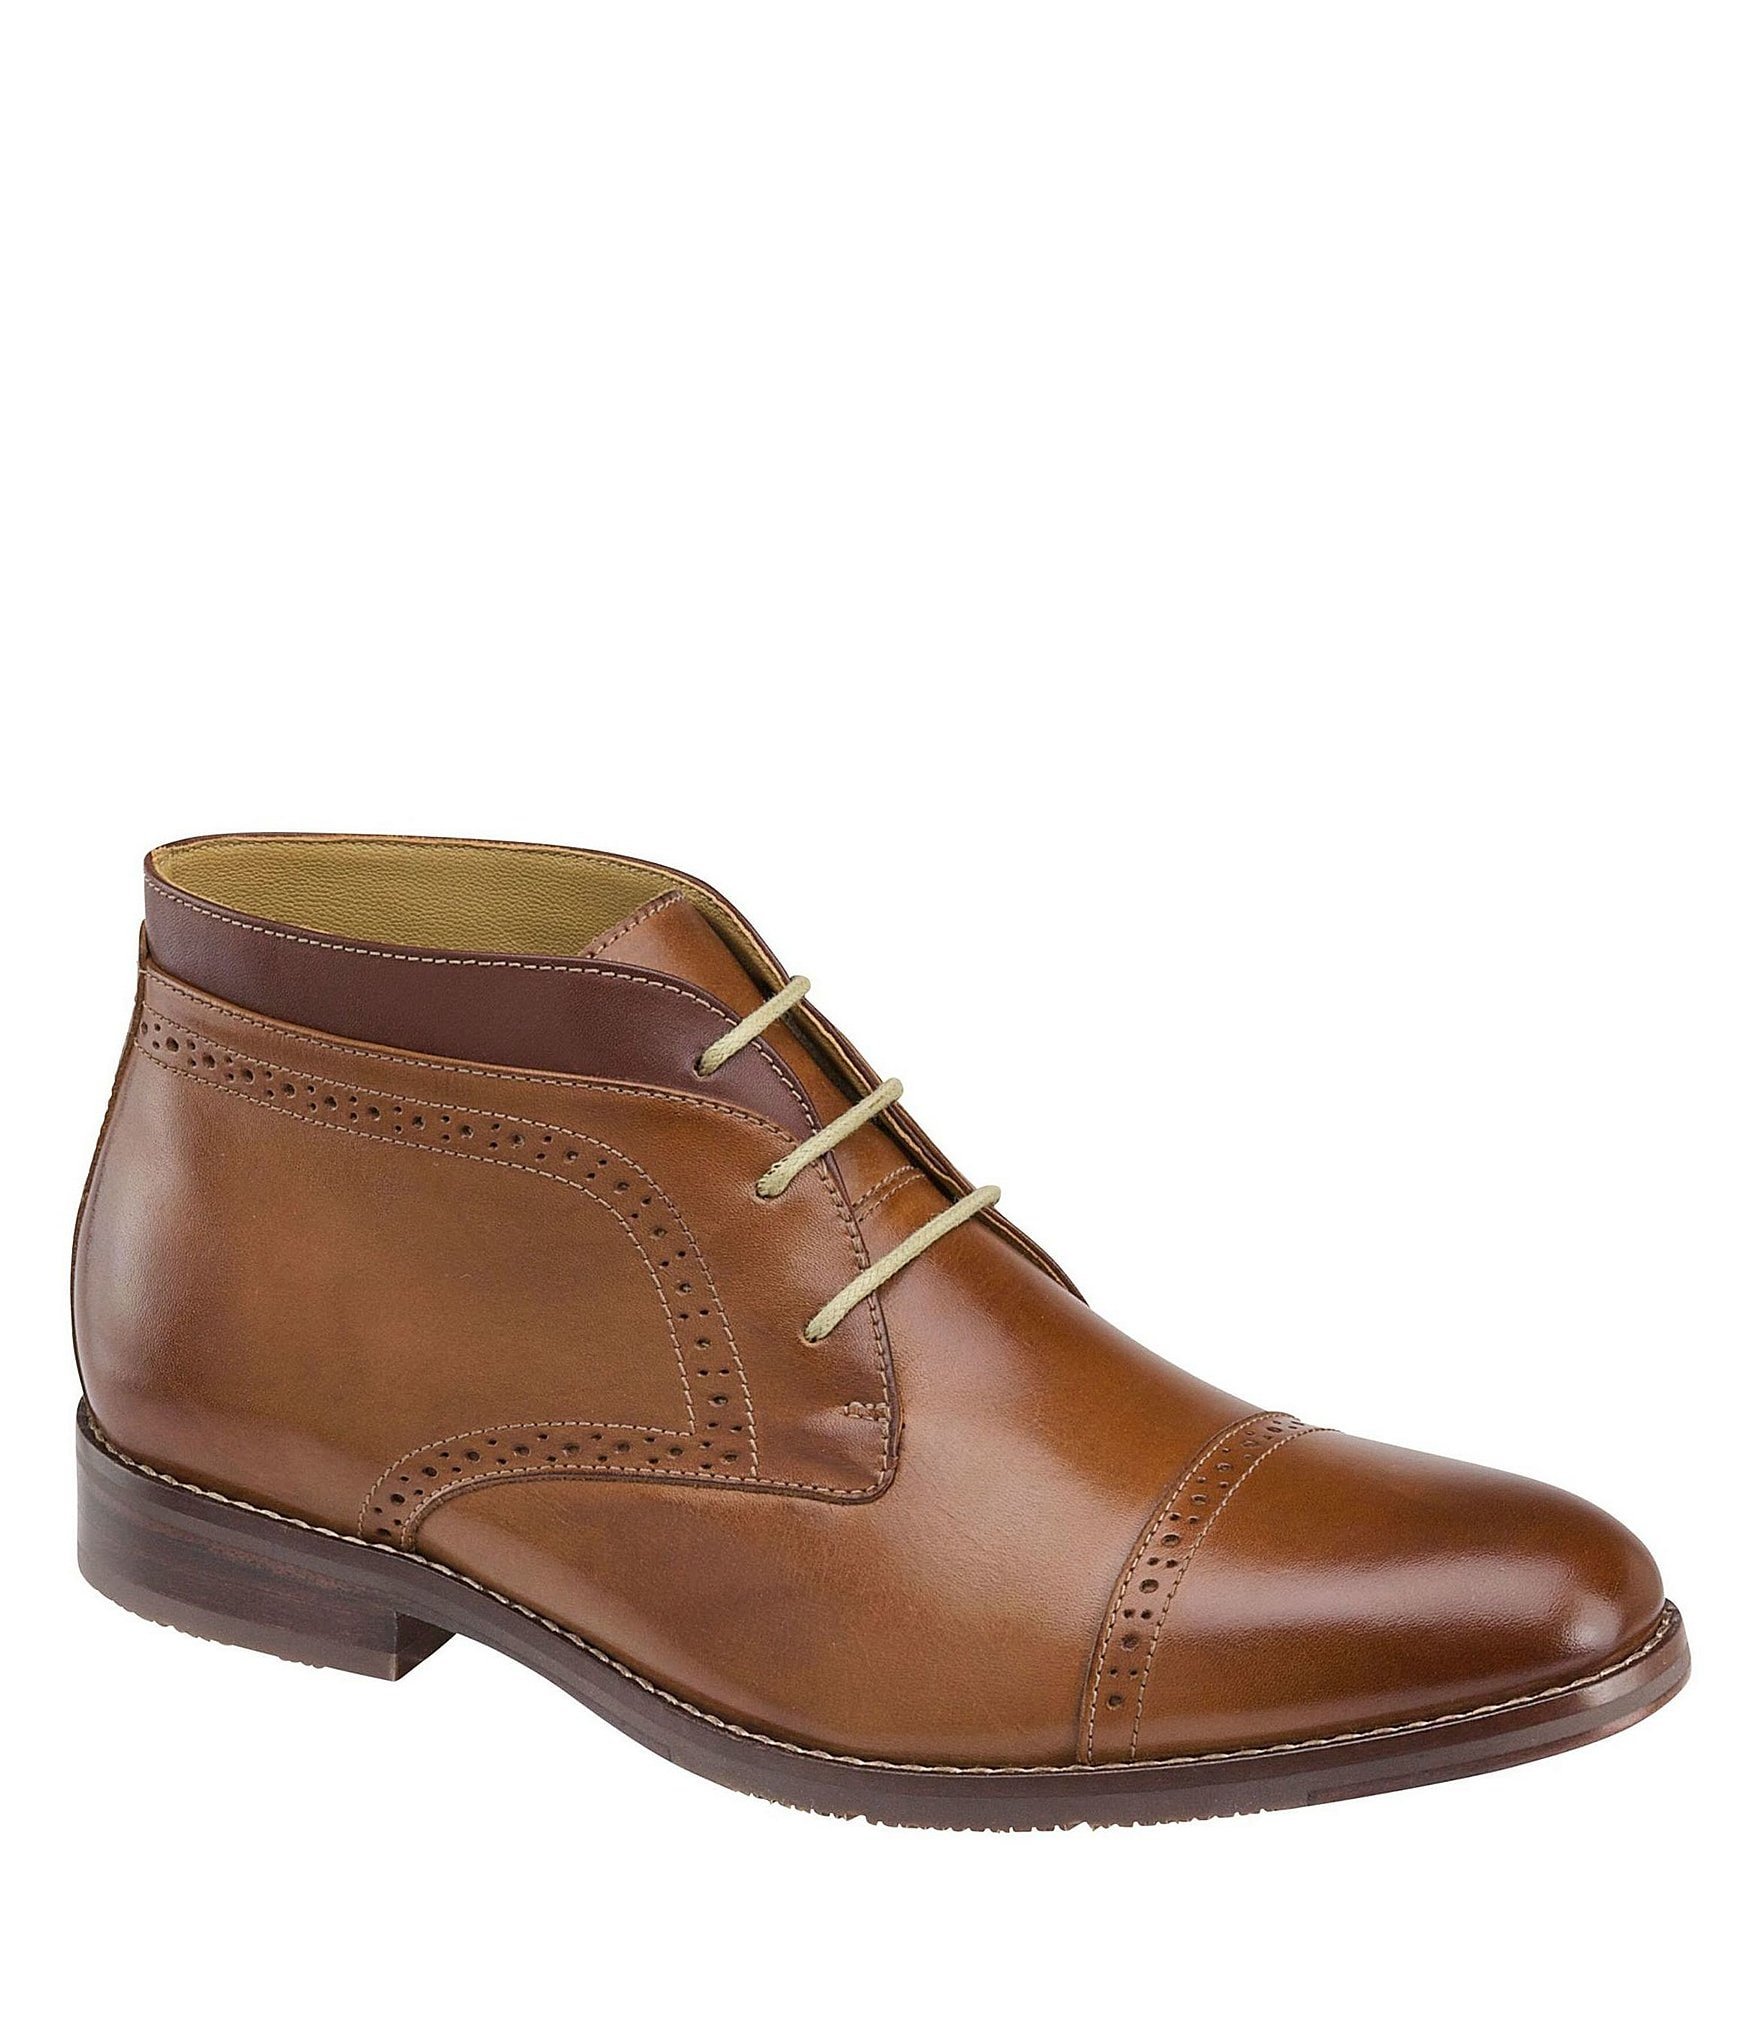 Johnston Murphy Mens Shoes Review